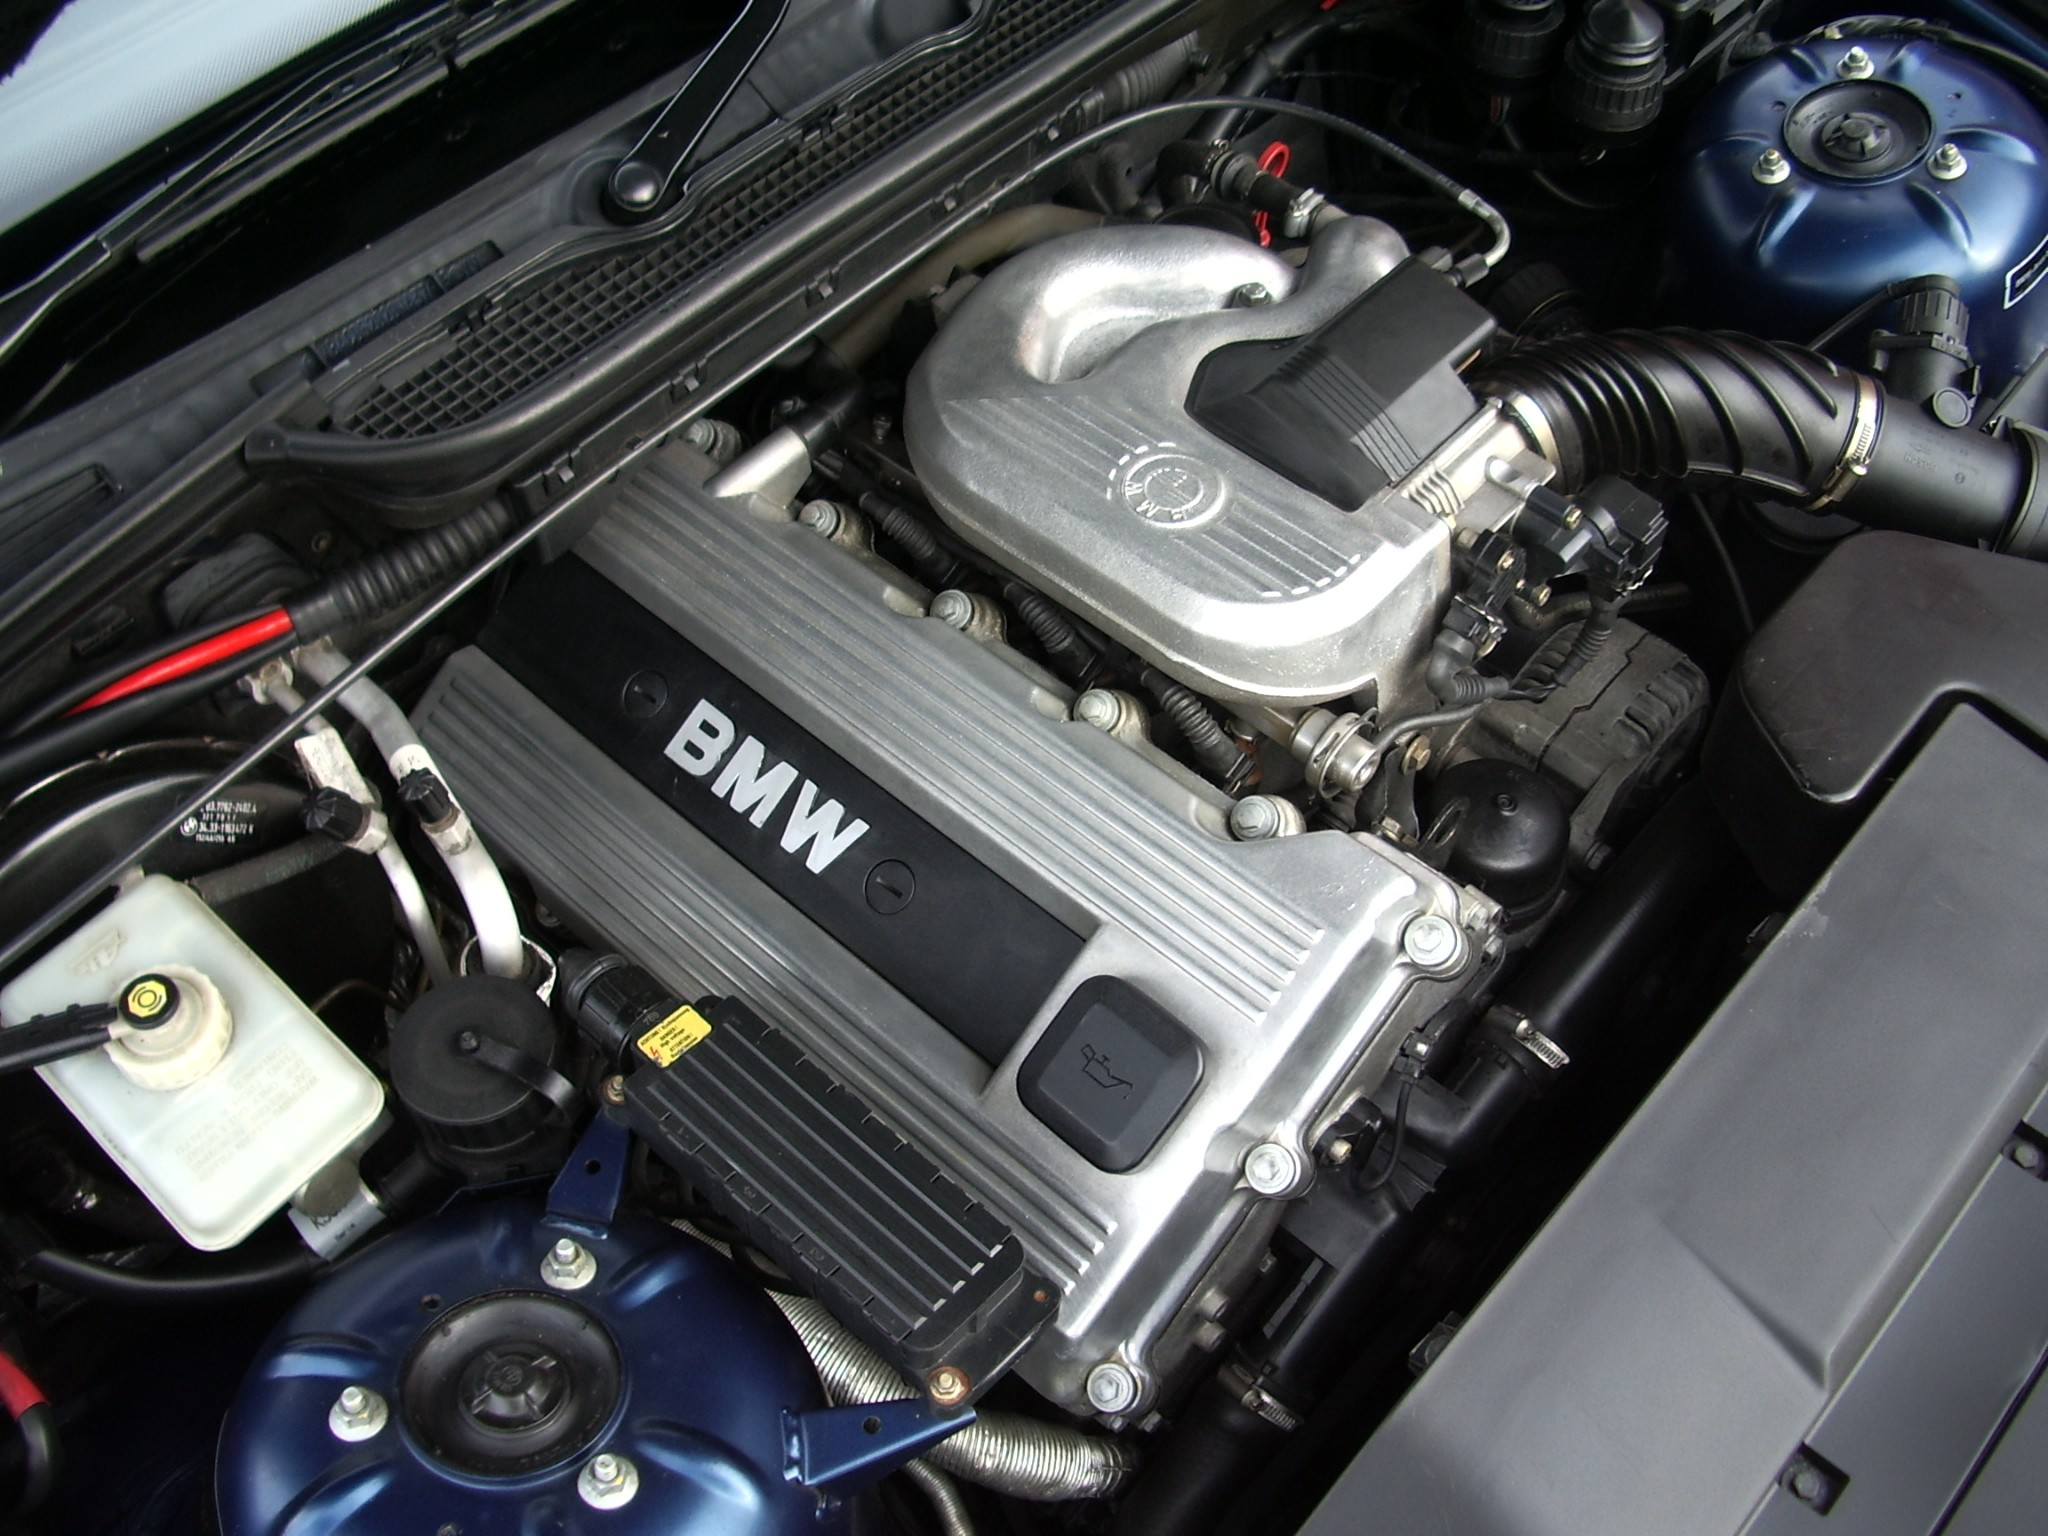 Bmw M44 Engine Diagram Bmw 318is Engine Bay M44 16valve Dohc Carforum Gallery Of Bmw M44 Engine Diagram